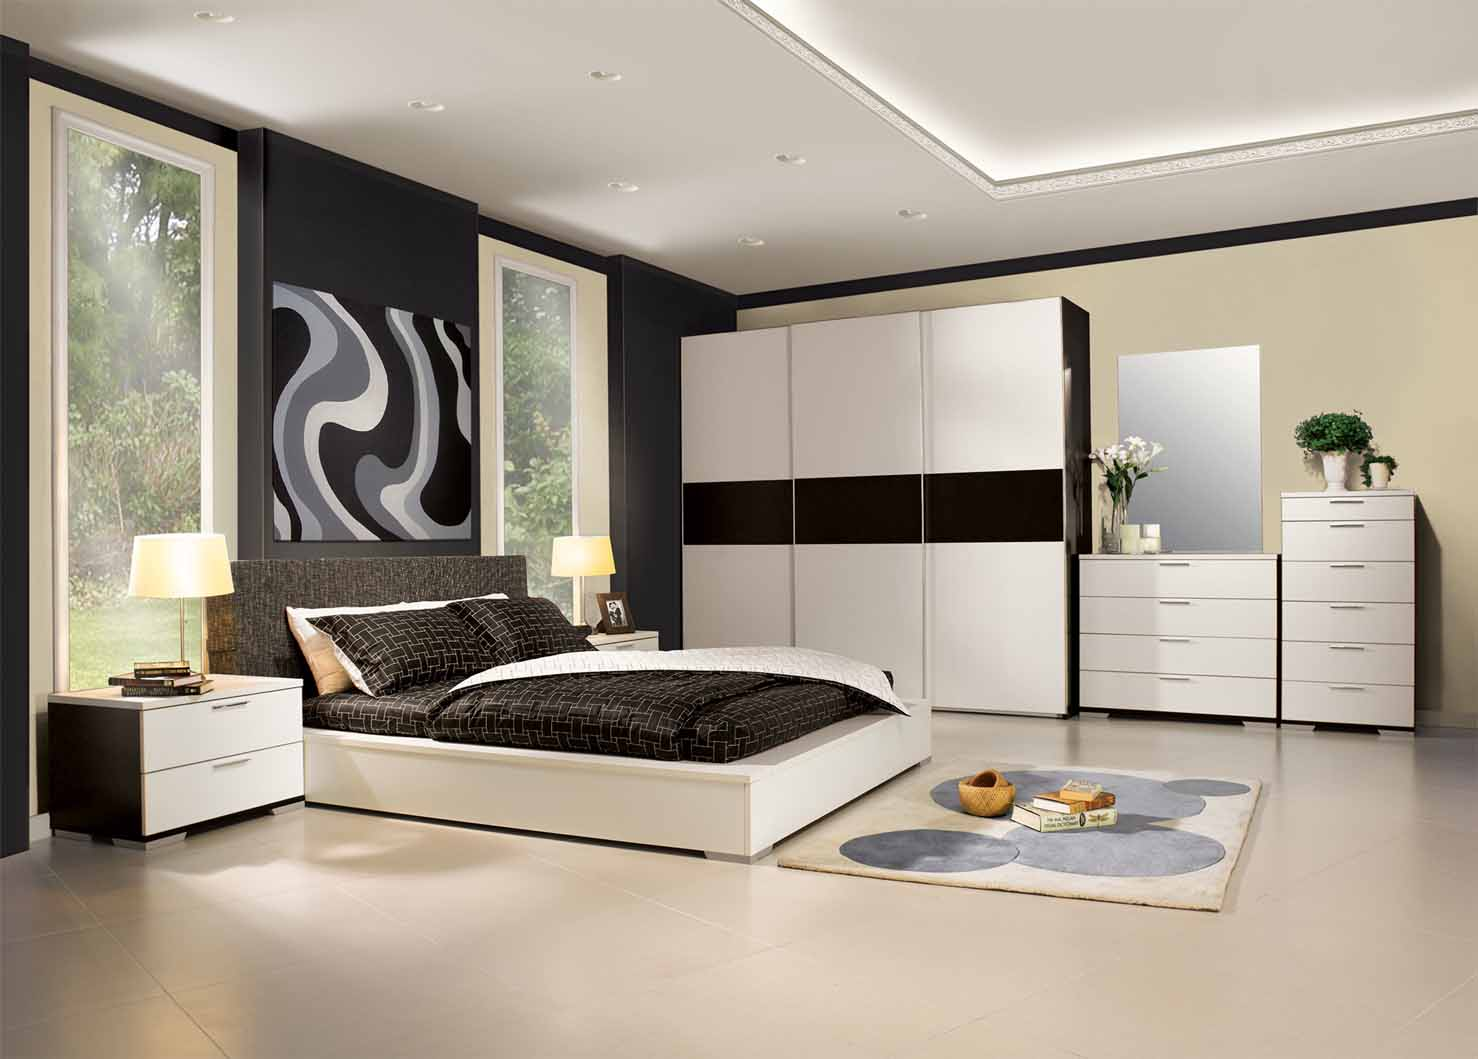 Modern bedroom design fouadtalal for Bedroom designs modern interior design ideas photos